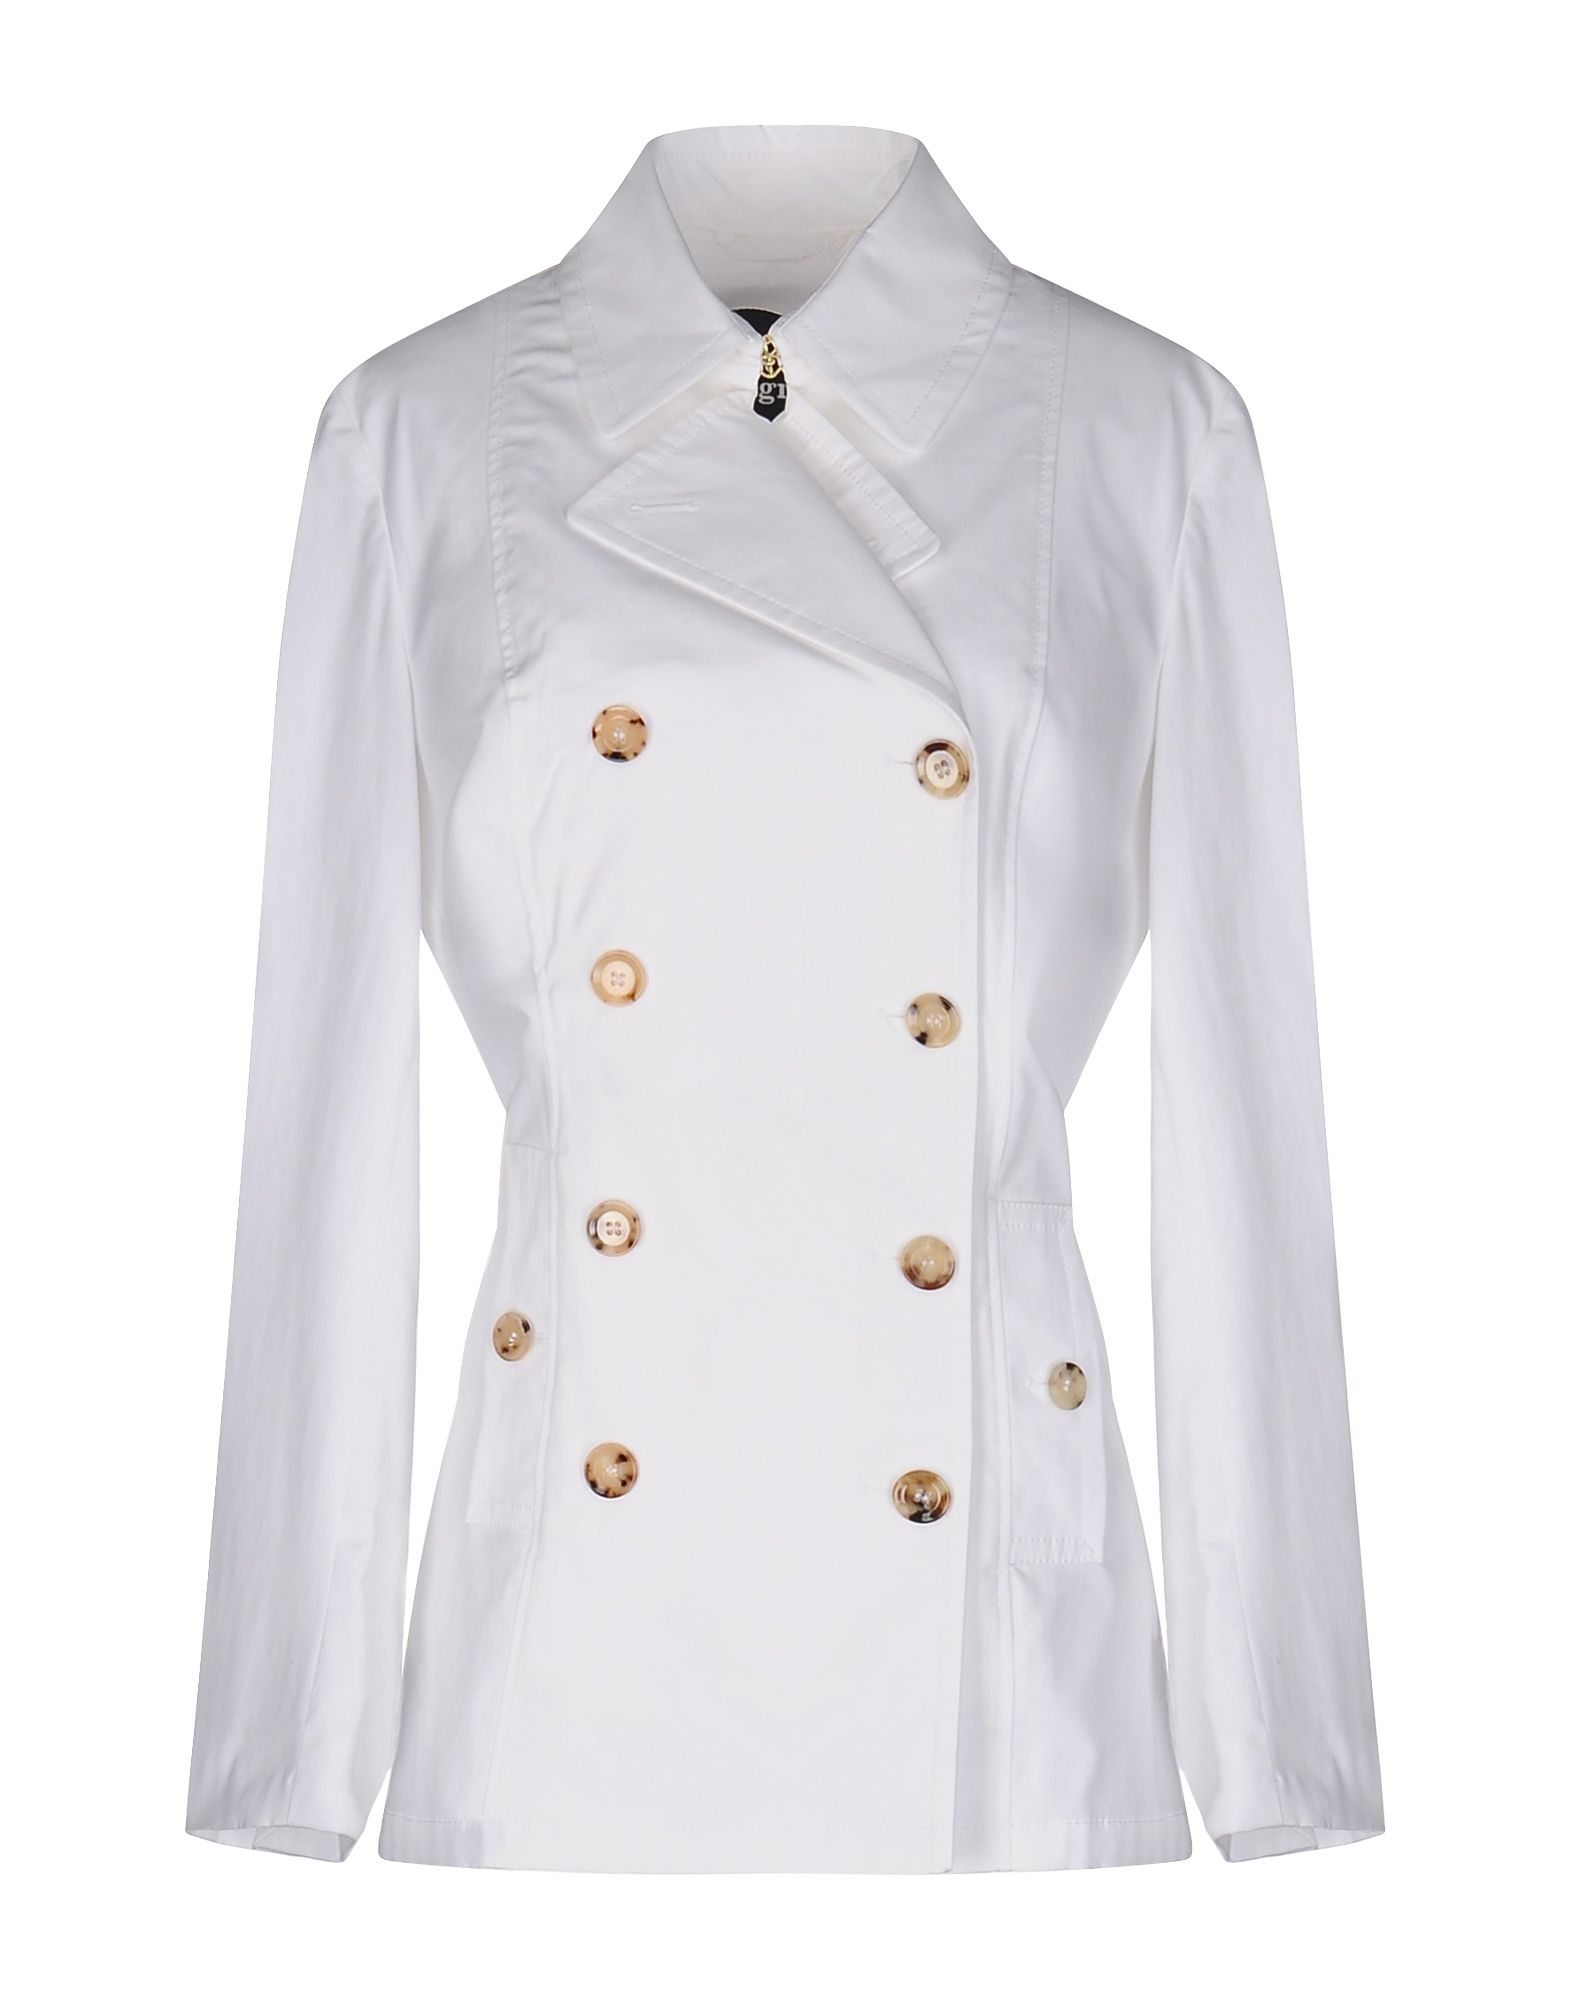 ALLEGRI Double Breasted Pea Coat in White